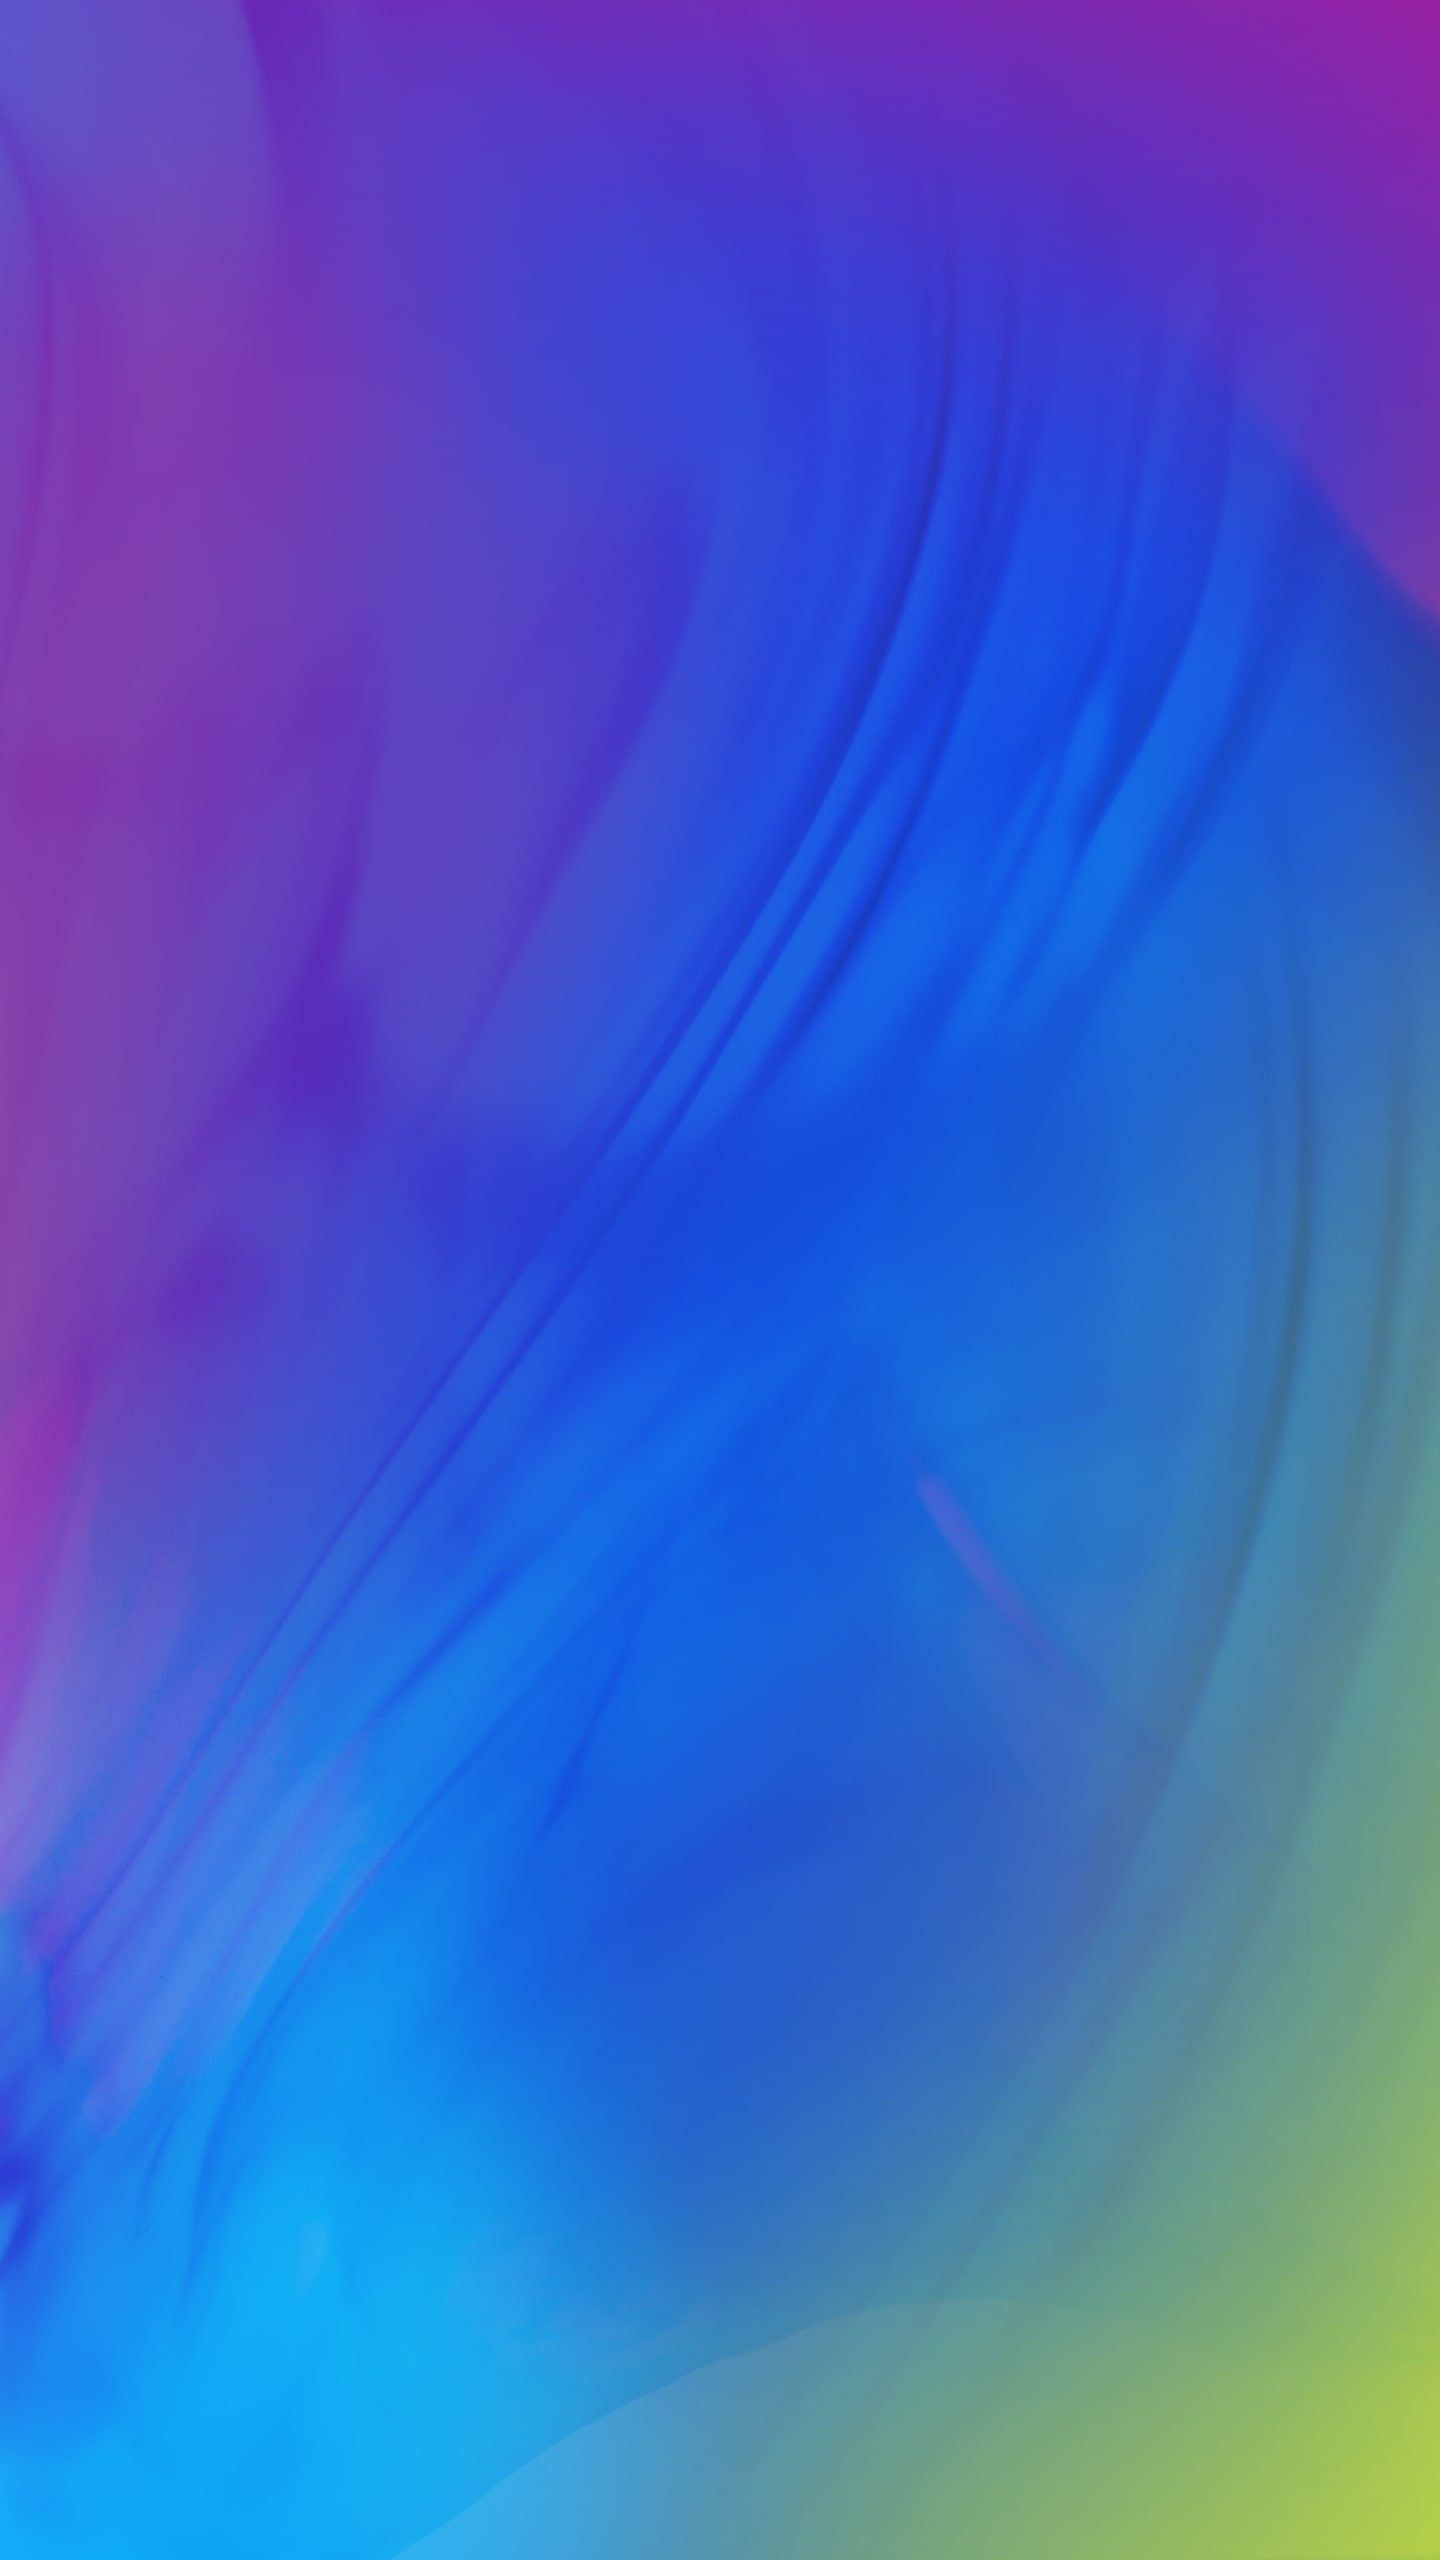 1440x2560 Wallpaper Samsung Galaxy M10, abstract, colorful, HD, OS #21447